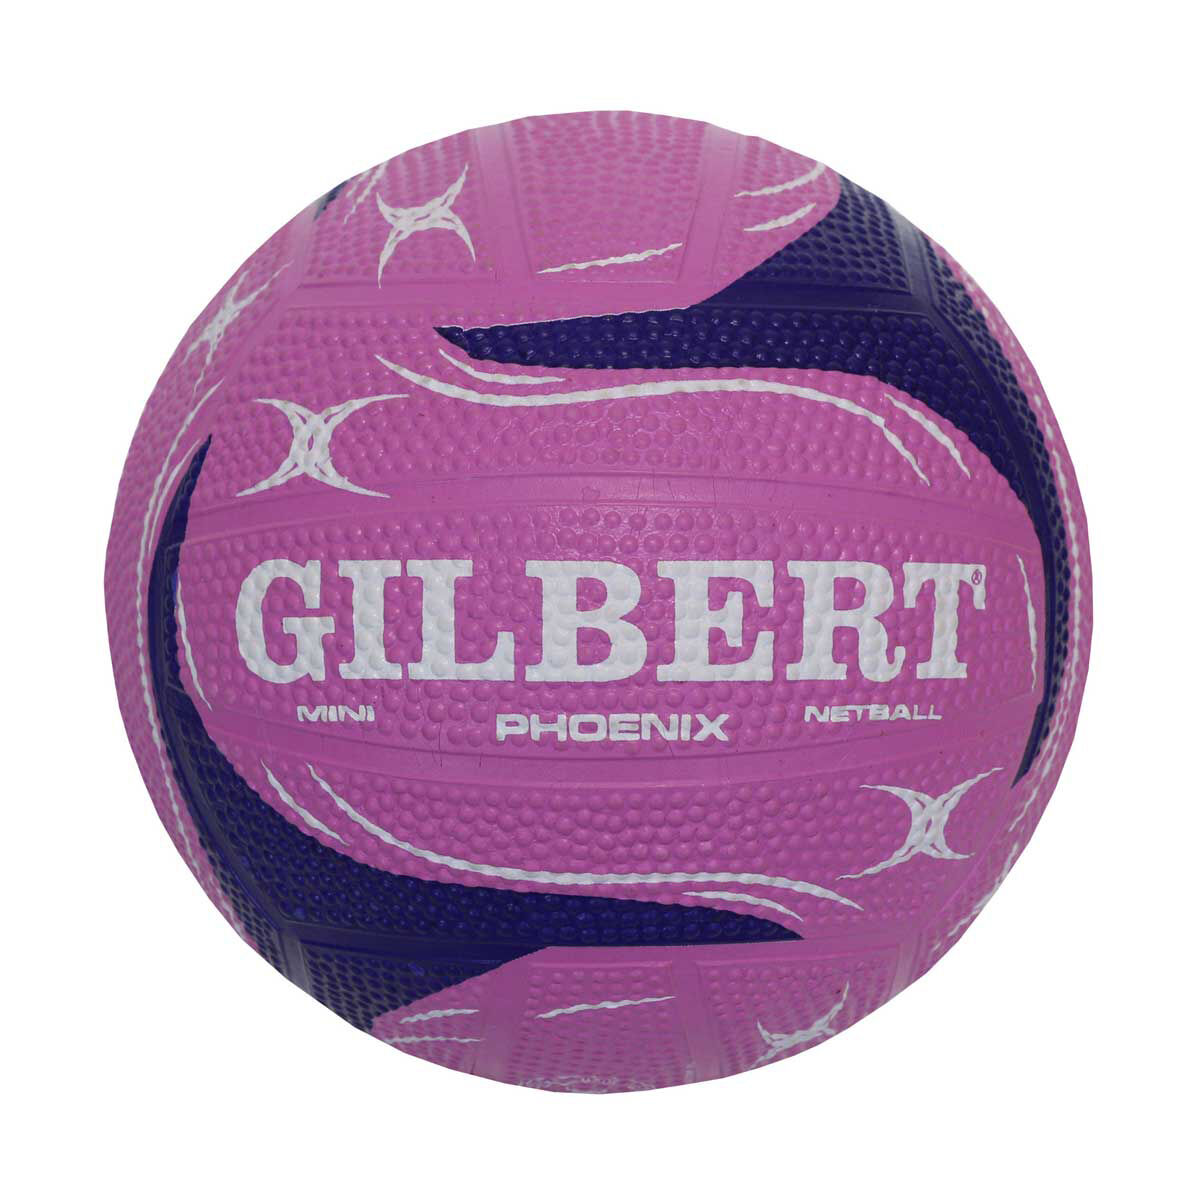 Balls Netball Gilbert Pulse Netball Size 4 Pink and White